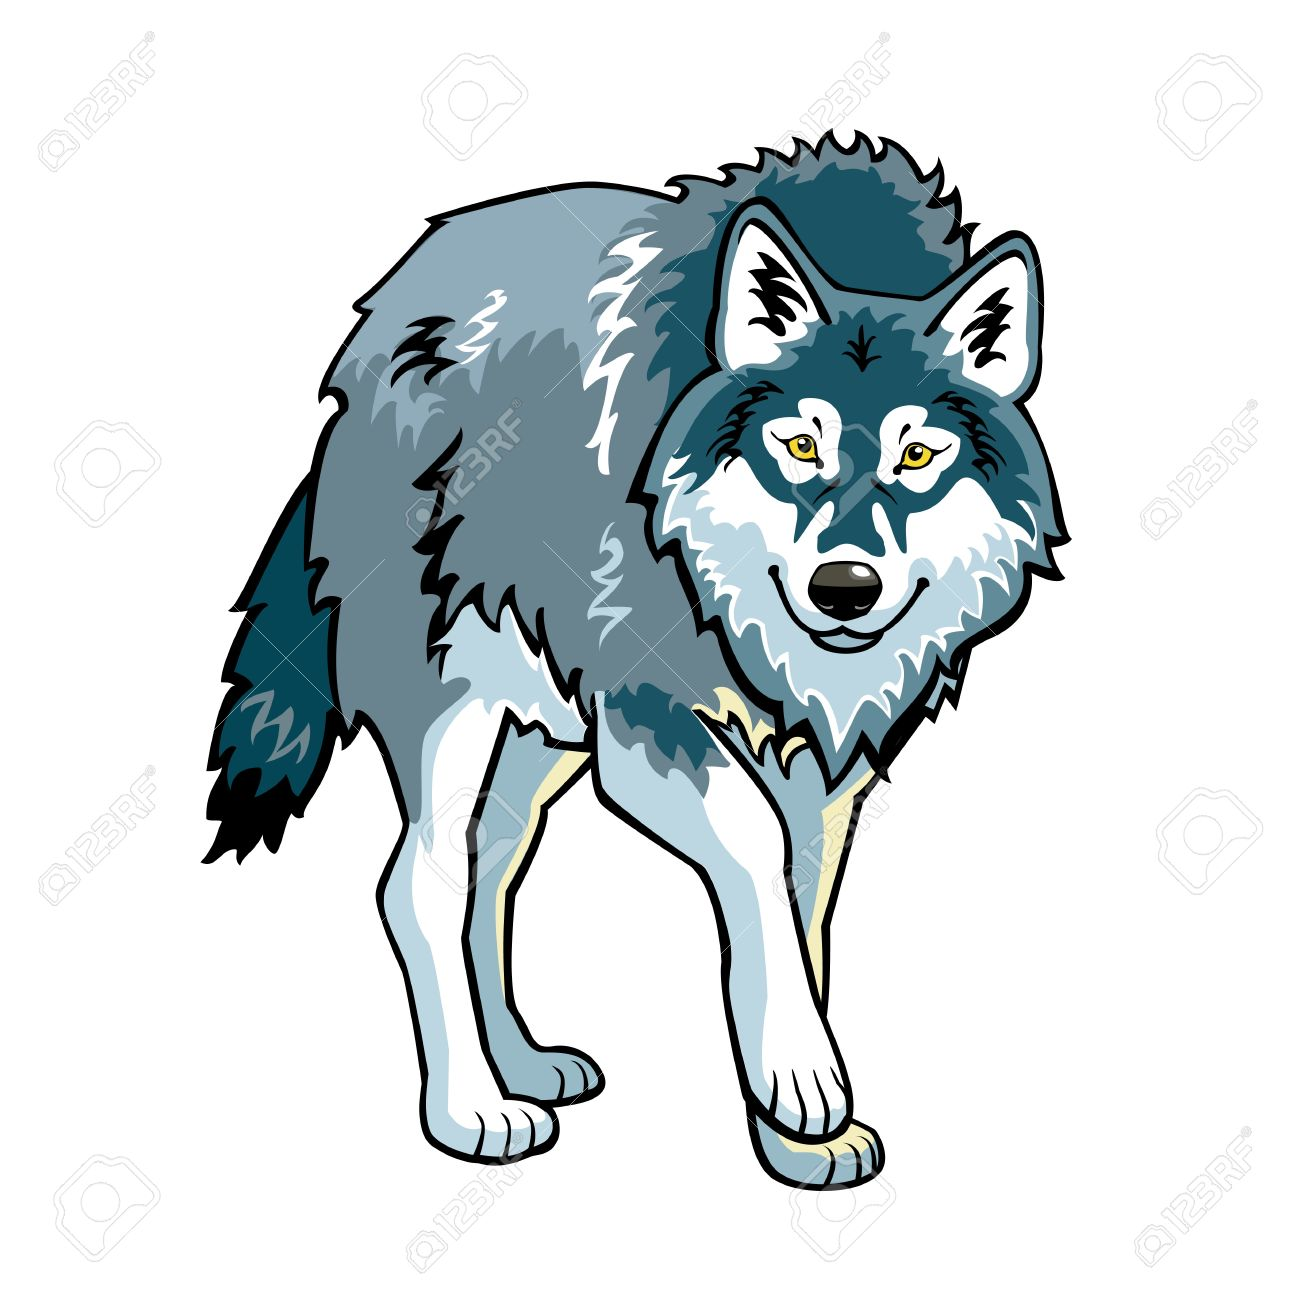 Wolf Clipart - Clipartion Clipartall.com-Wolf Clipart - Clipartion clipartall.com-9